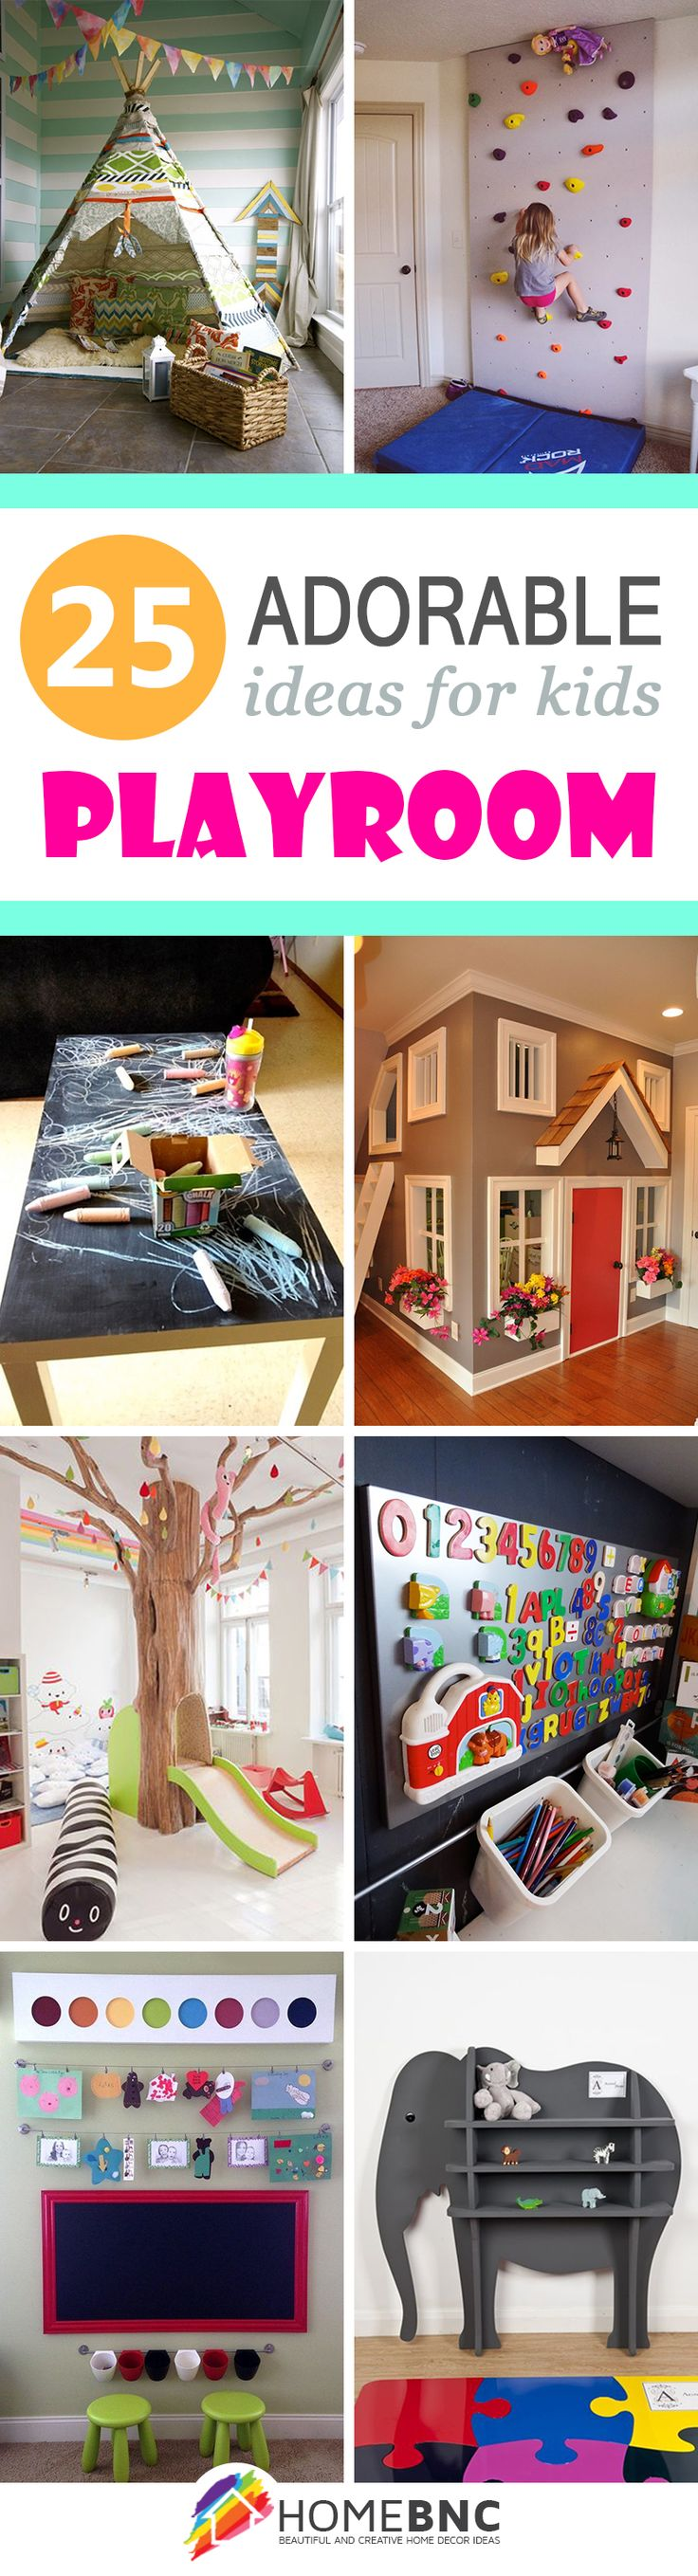 446 best playroom hangout rooms images on pinterest play rooms